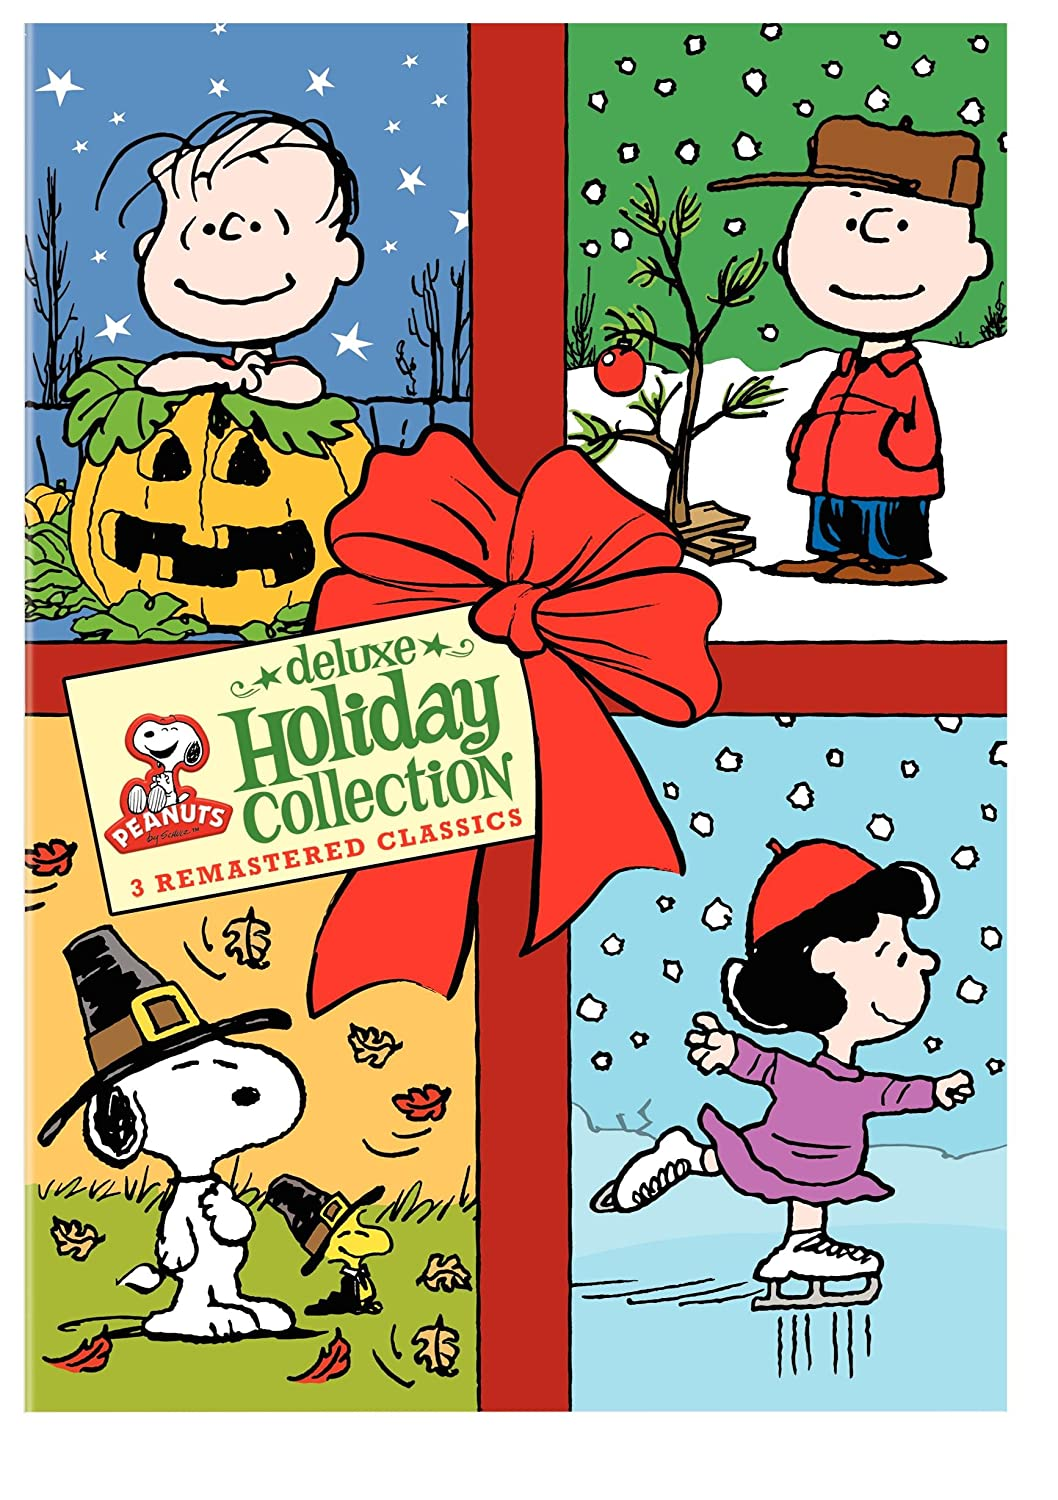 amazoncom peanuts holiday collection its the great pumpkin charlie brown a charlie brown thanksgiving a charlie brown christmas movies tv